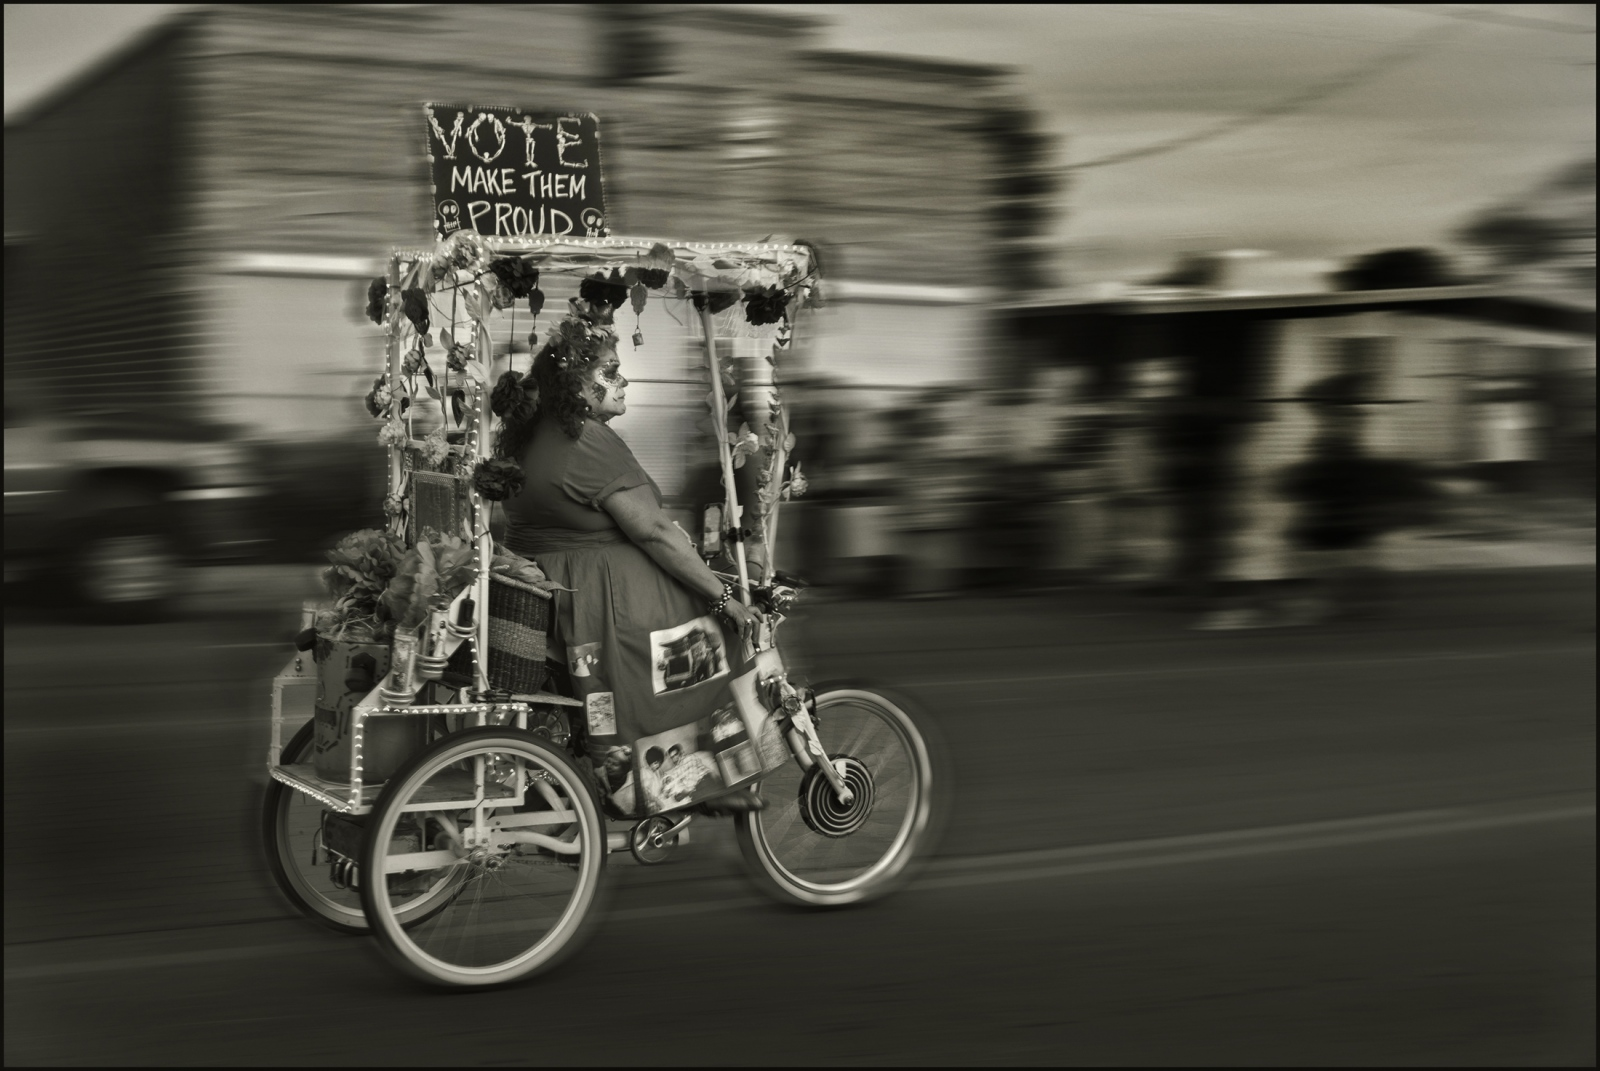 Vote! All Souls Procession, Tucson, Arizona, 4 November 2018.